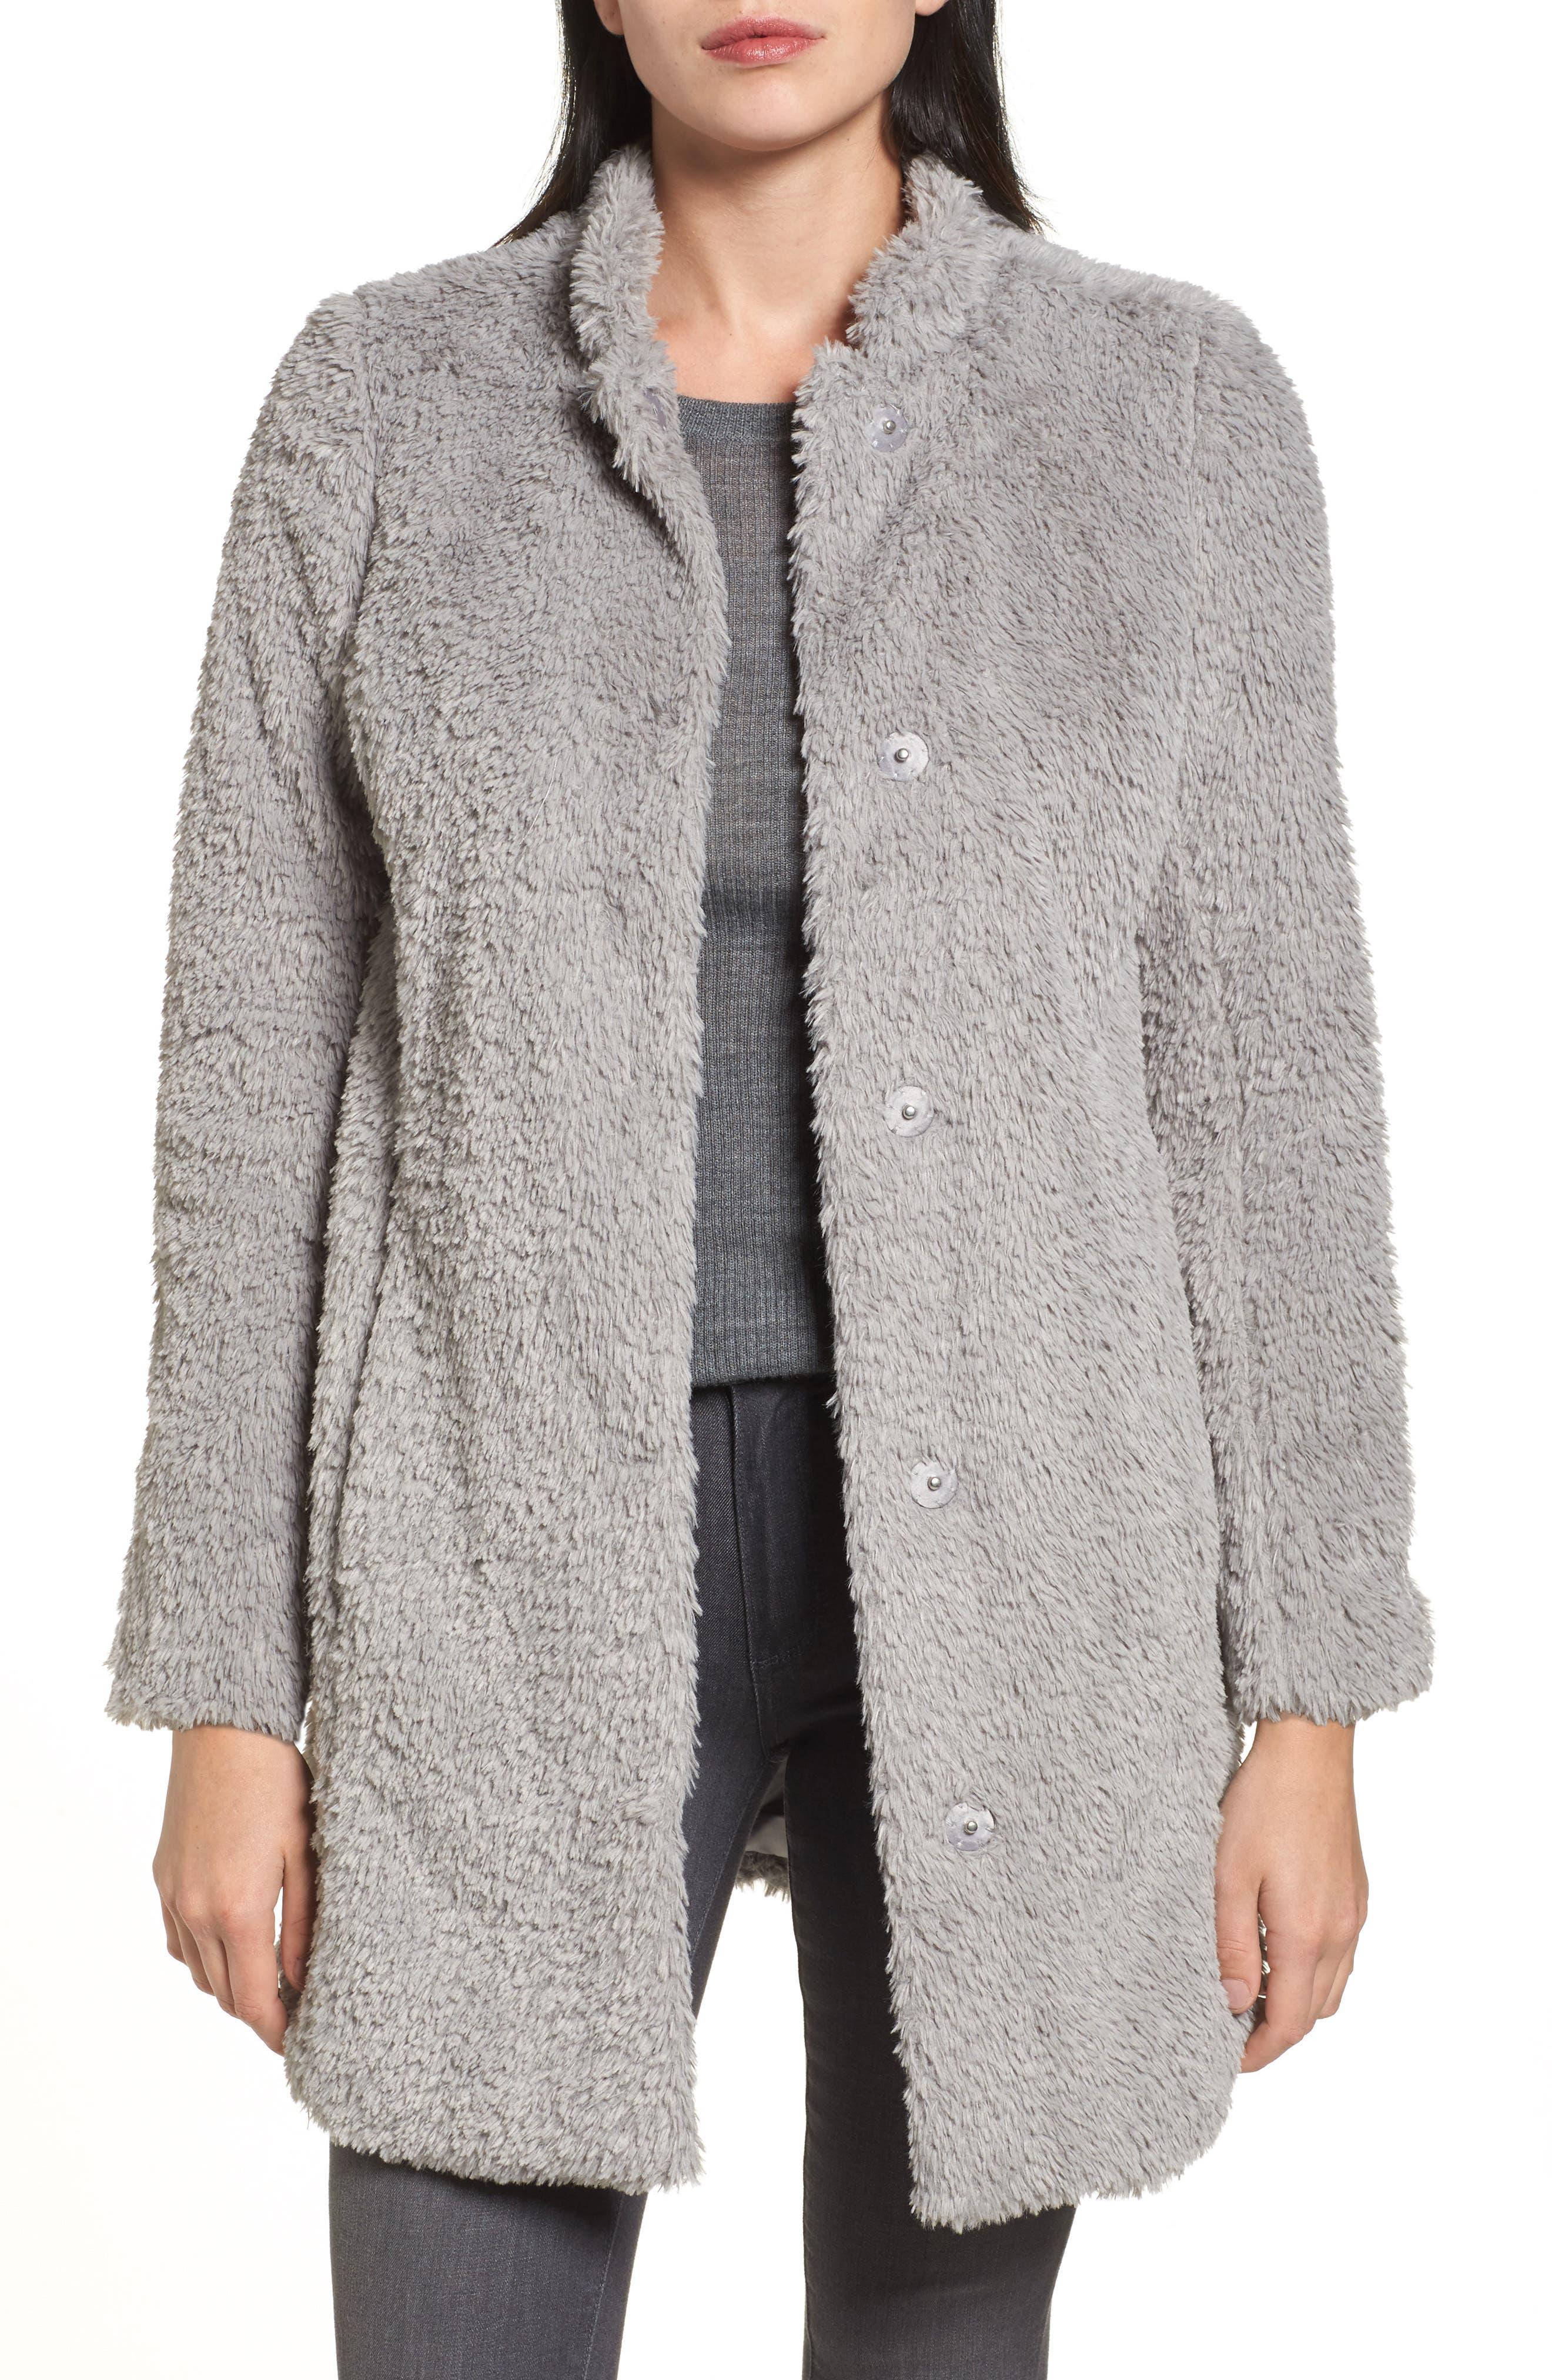 Alternate Image 1 Selected - Kenneth Cole New York Faux Fur Jacket